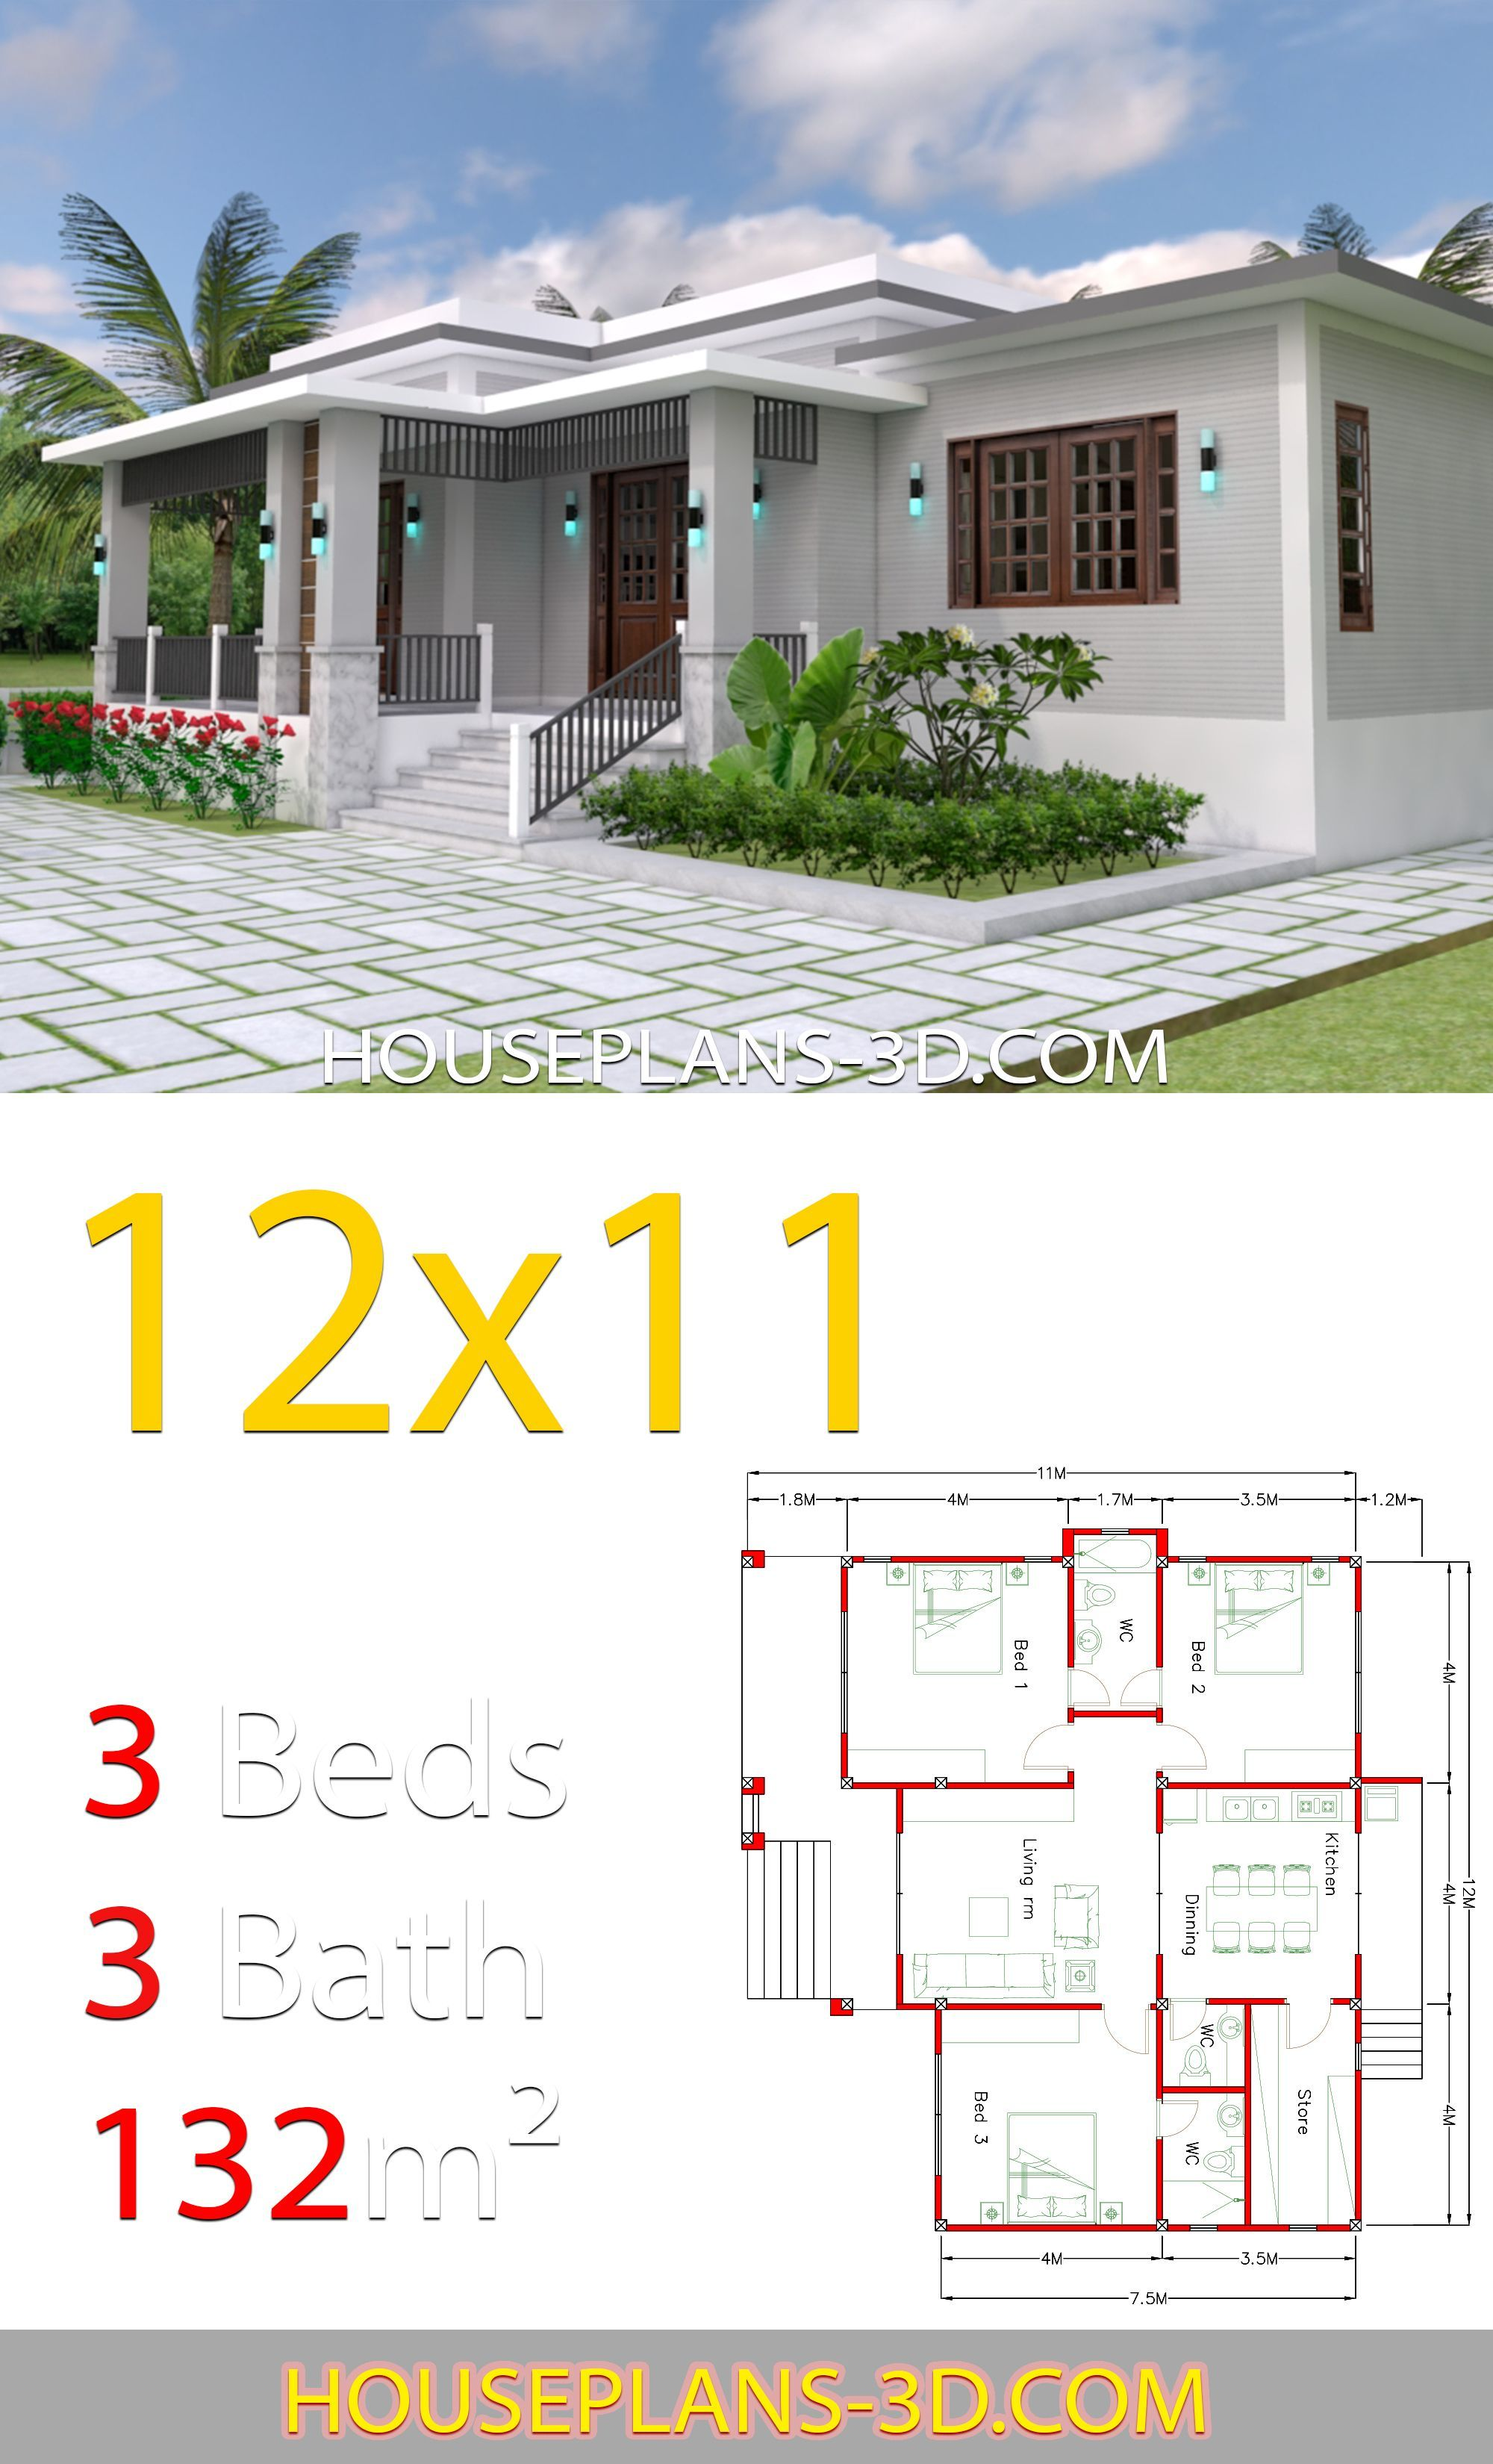 Home Design 12x11 With 3 Bedrooms Terrace Roof House Plans 3d Interiordesigntraditional Interiordesi House Plans House Construction Plan House Plan Gallery